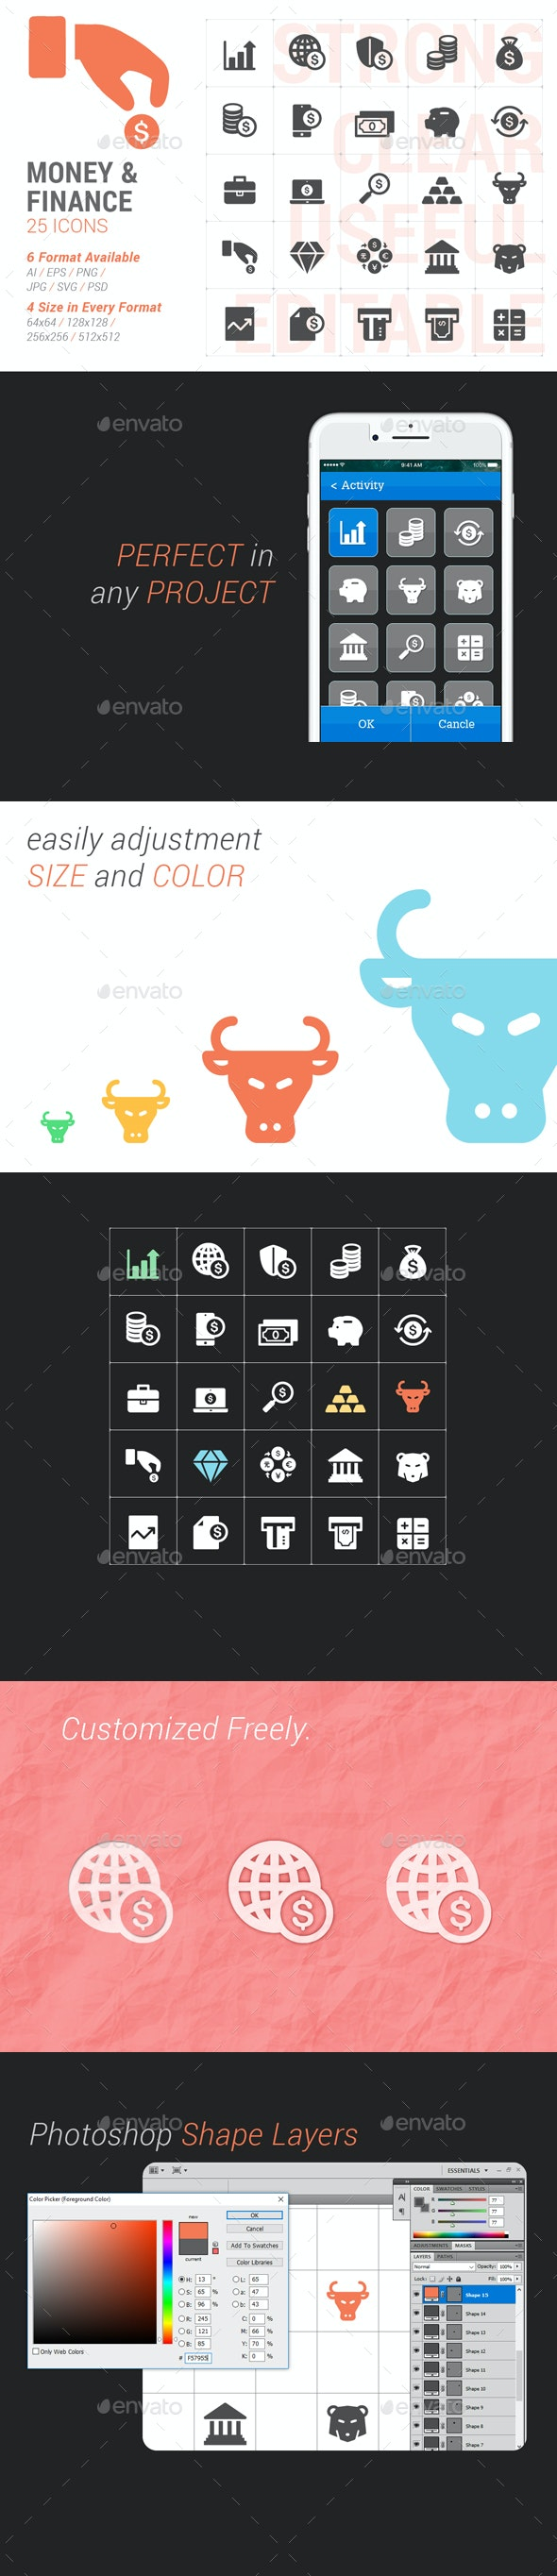 Money & Finance Filled Icon - Business Icons